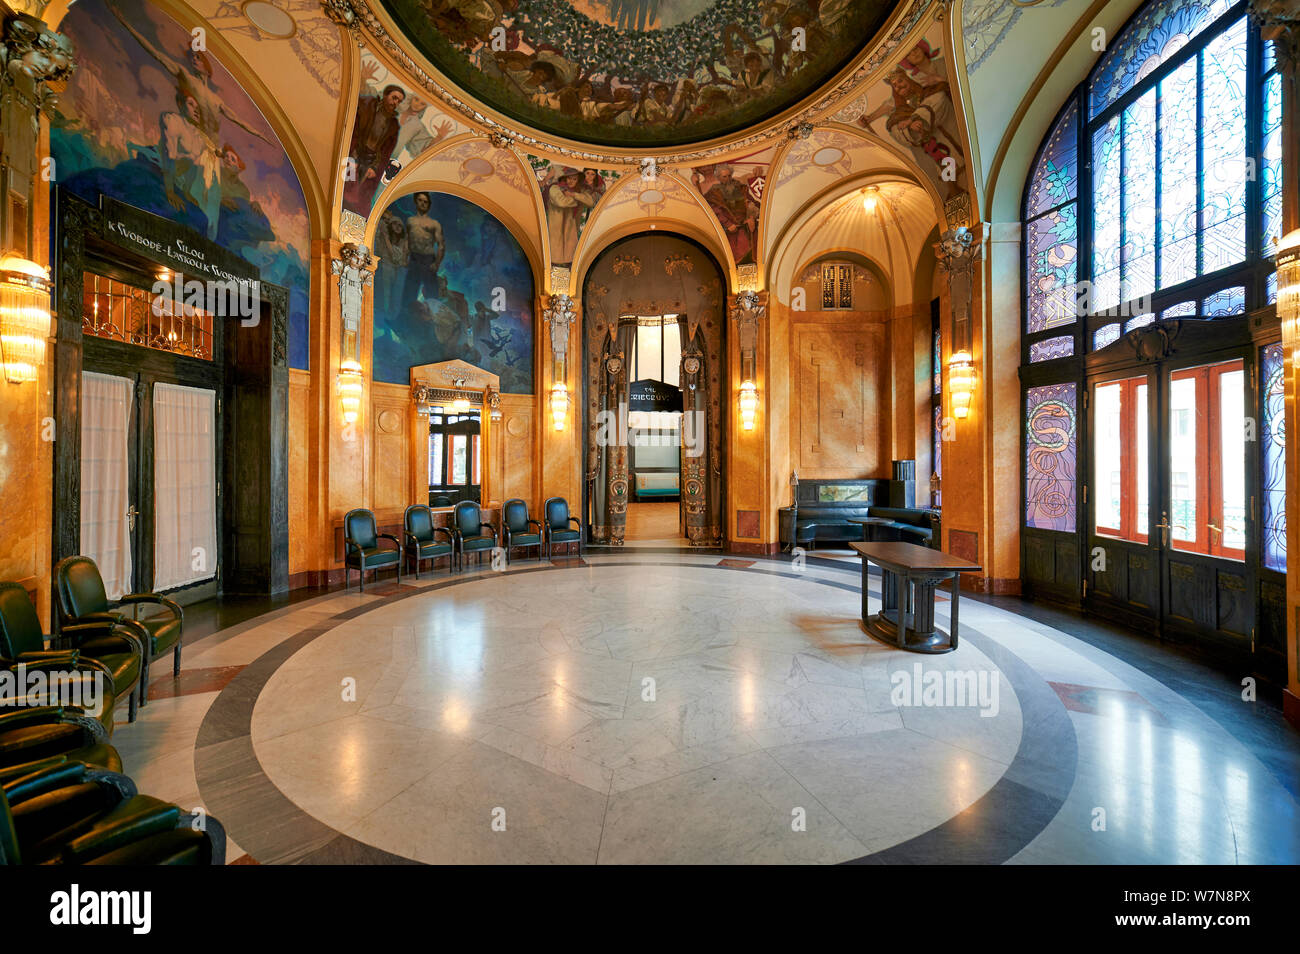 Prague Czech Republic. Decorated rooms inside the Municipal House Stock Photo